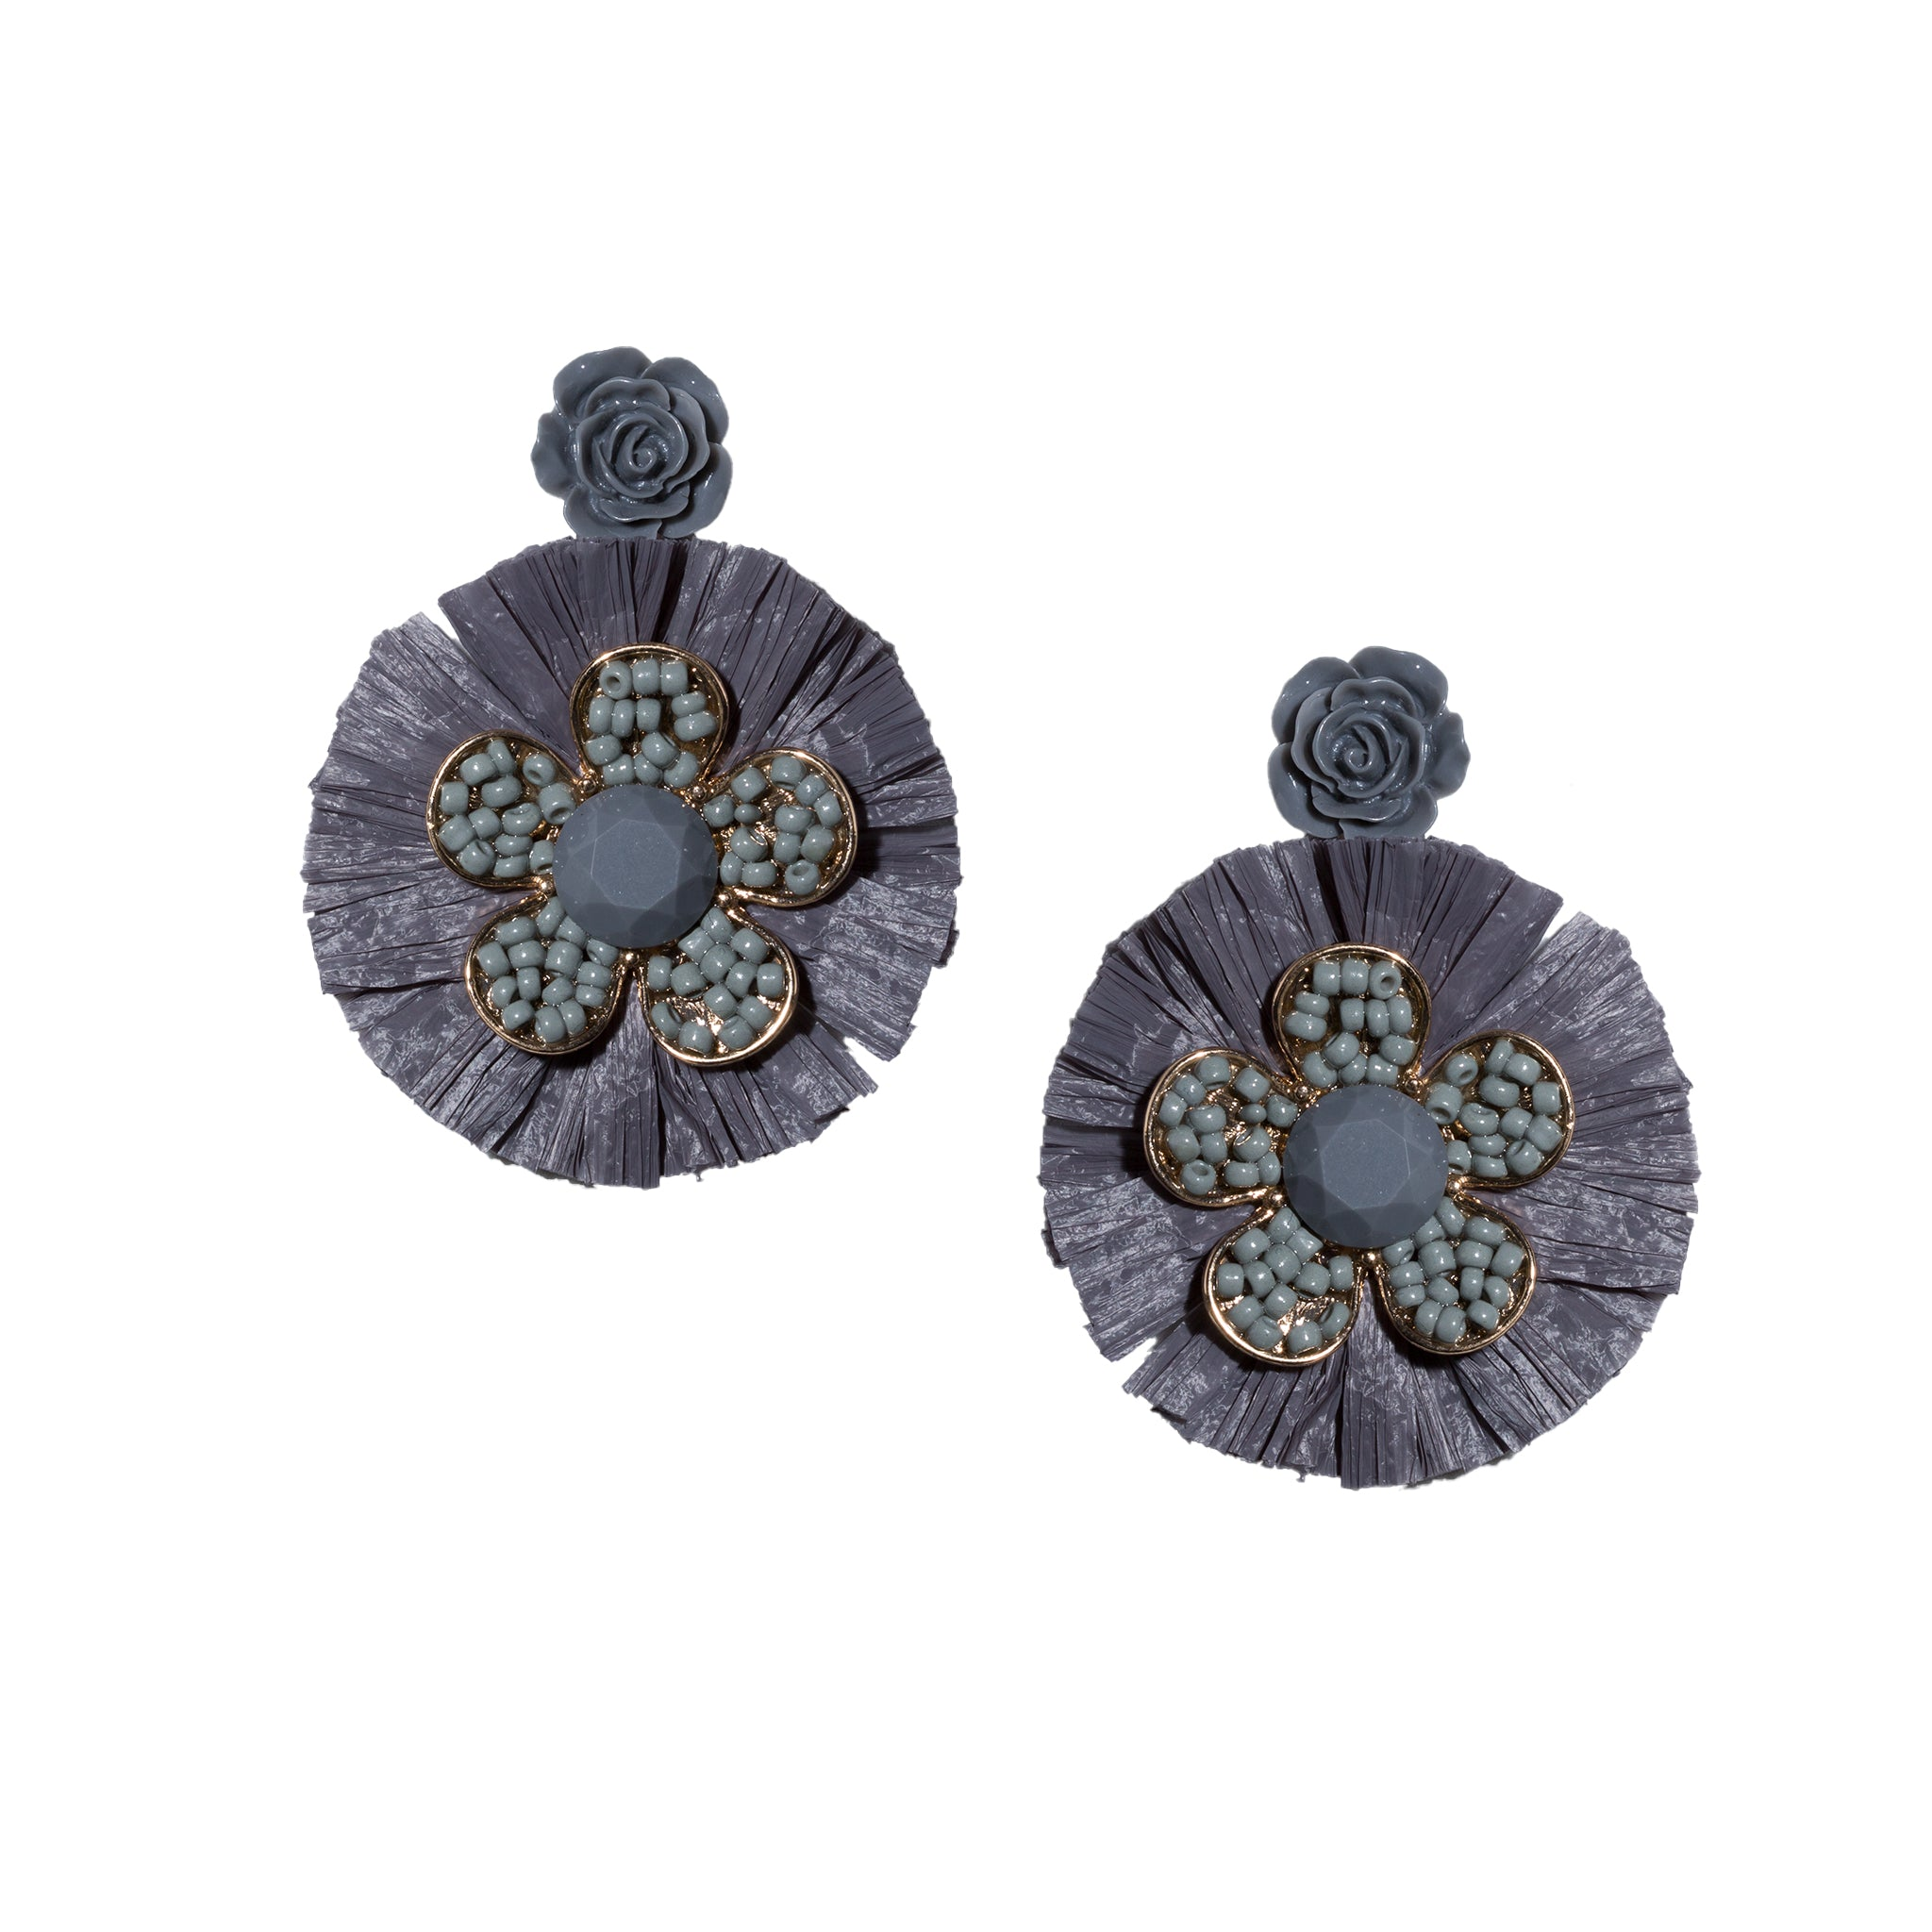 slate grey beaded flower chandelier earrings